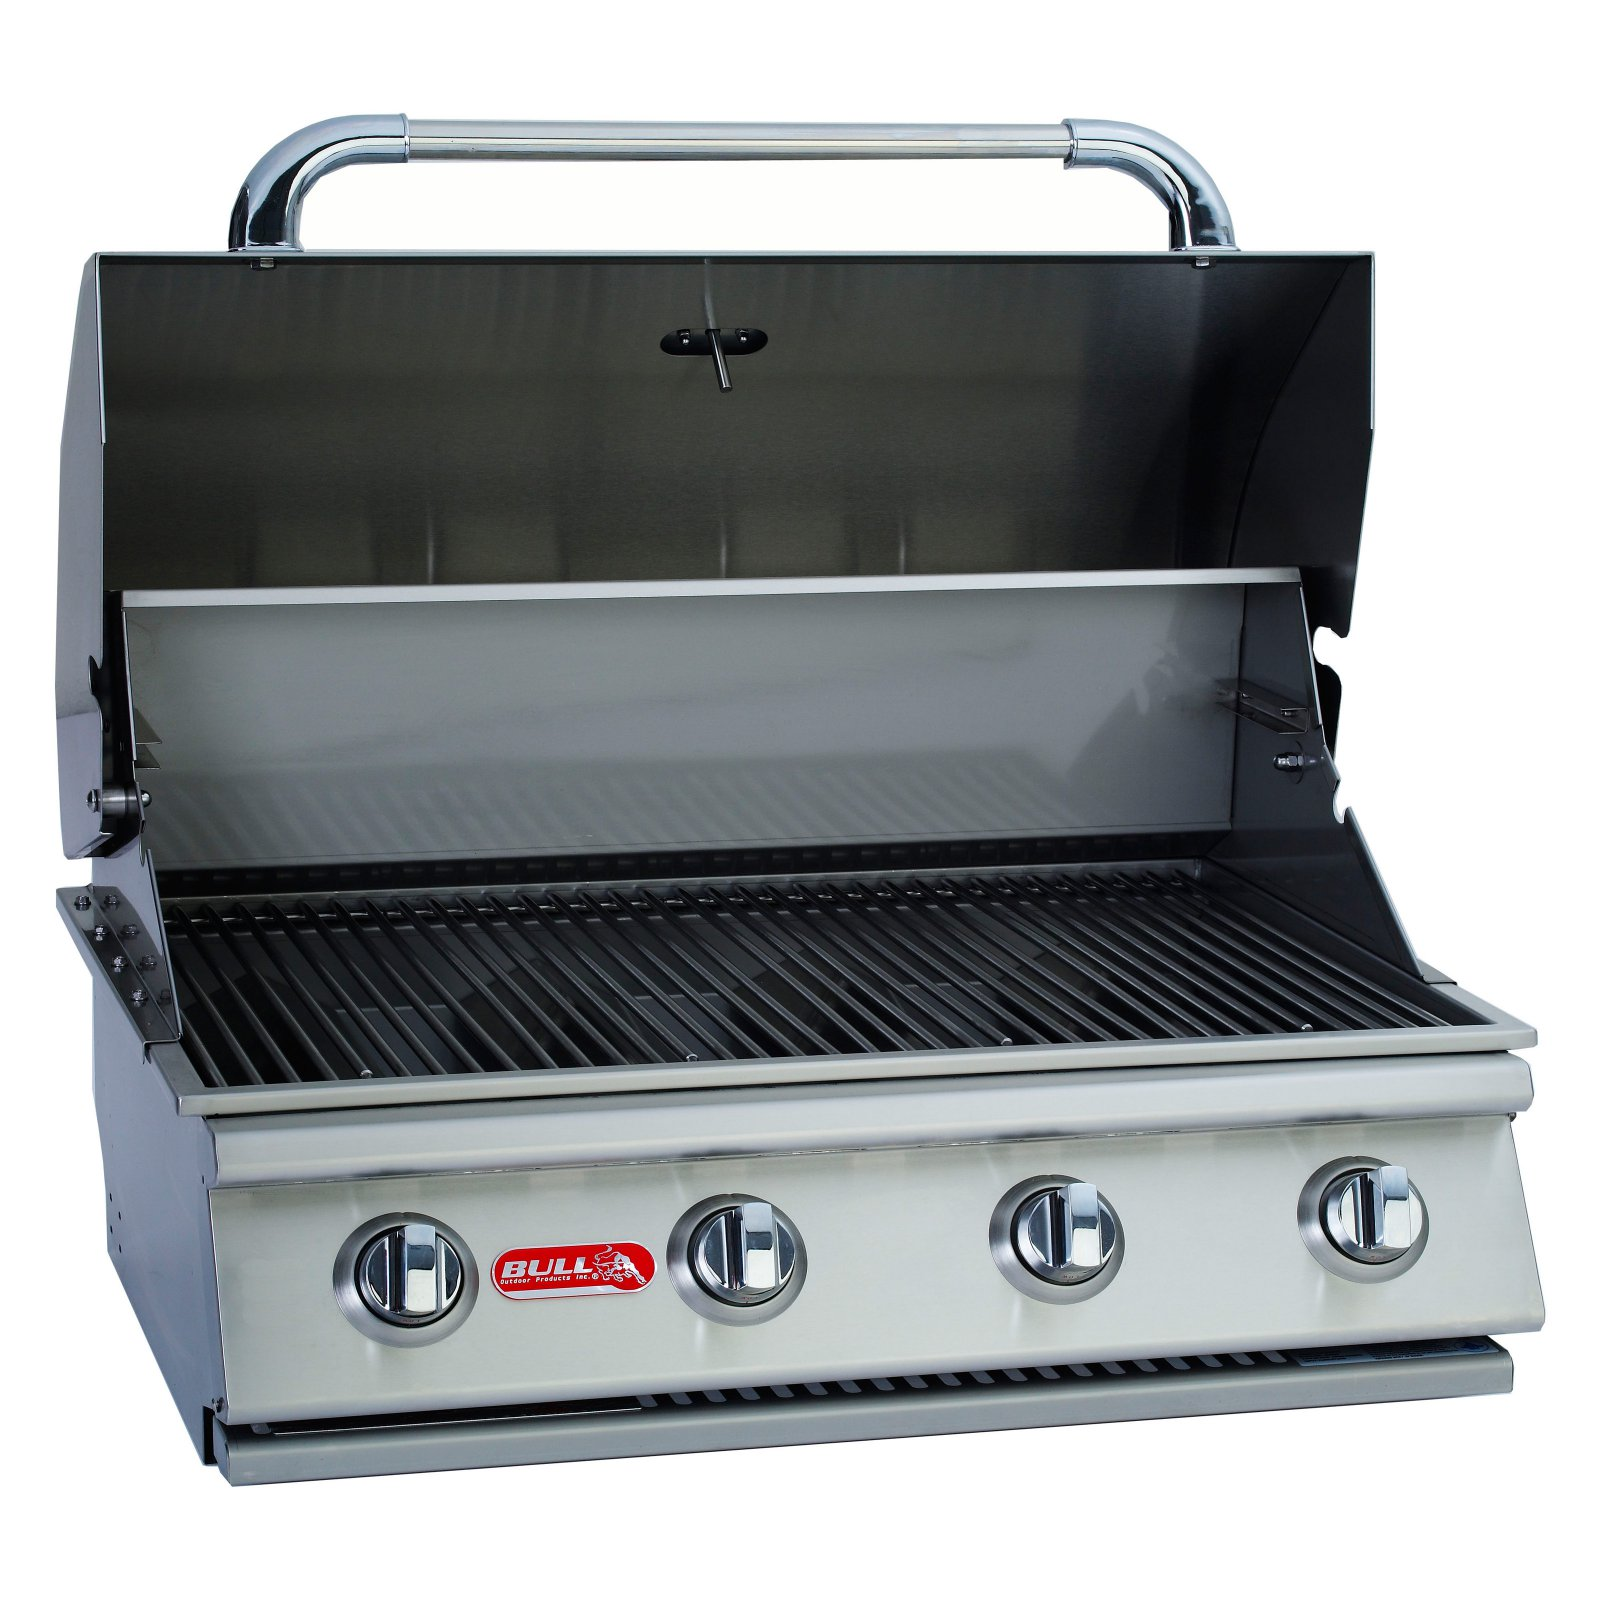 Bull Outlaw 4 Burner Built-In Gas Grill